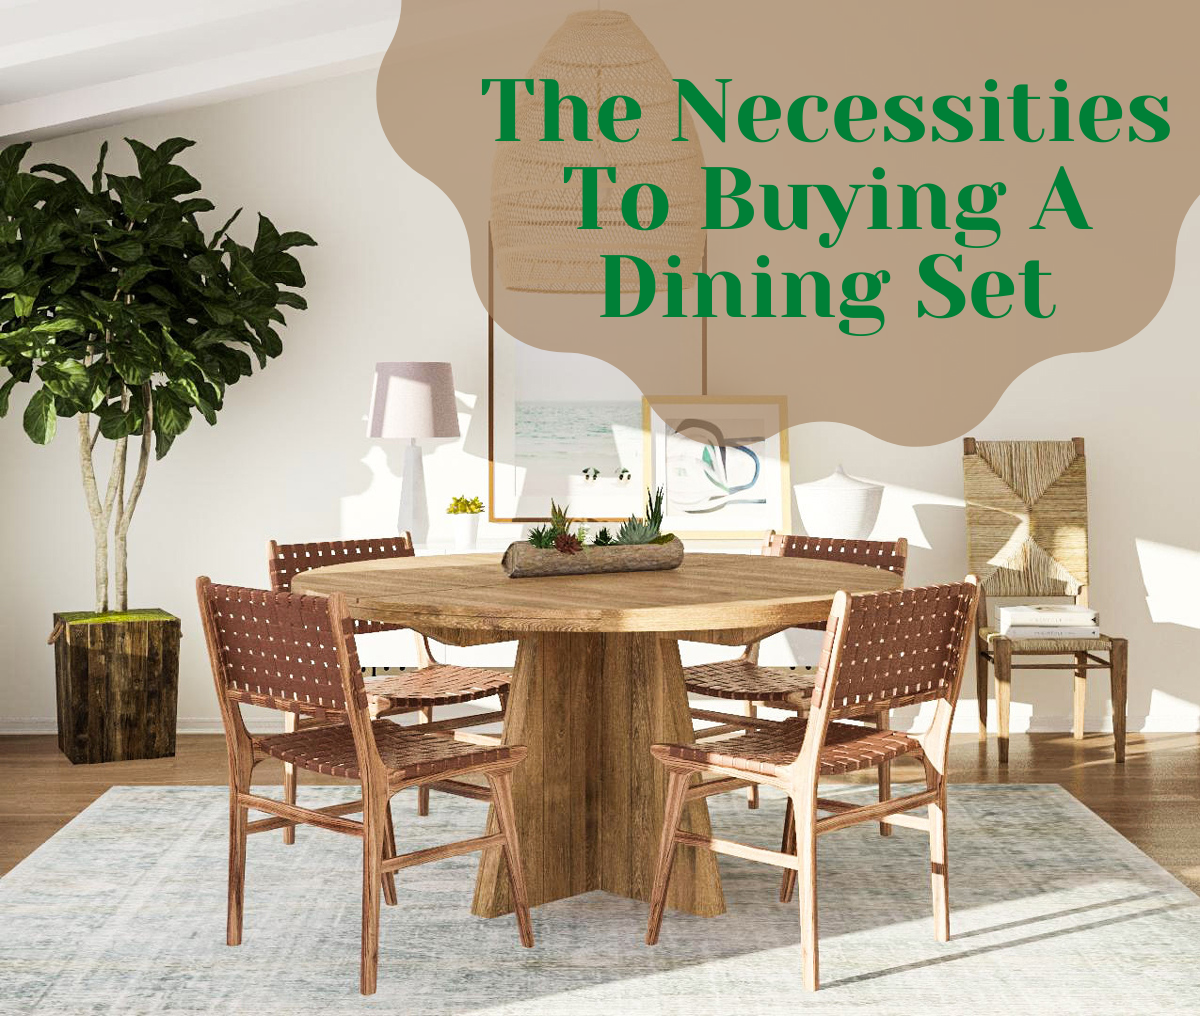 dining set, The Necessities To Buying A Dining Set